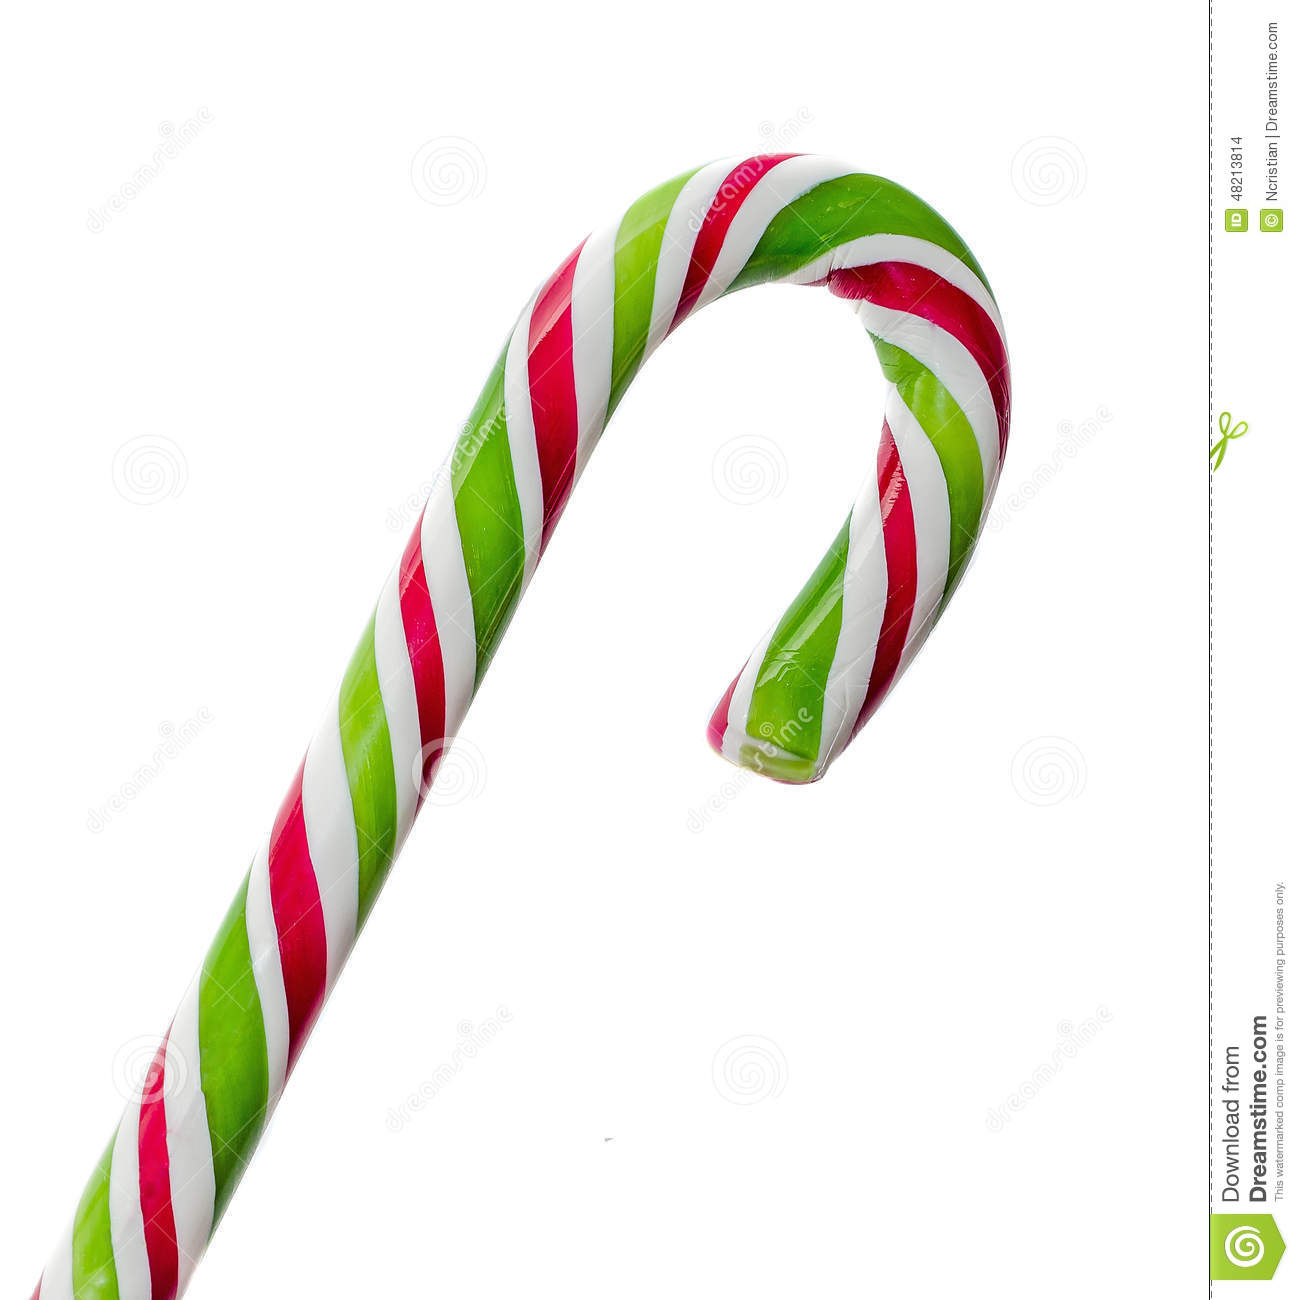 Candy Christmas.Green White And Red Candy Christmas Stick Lollipop Stock